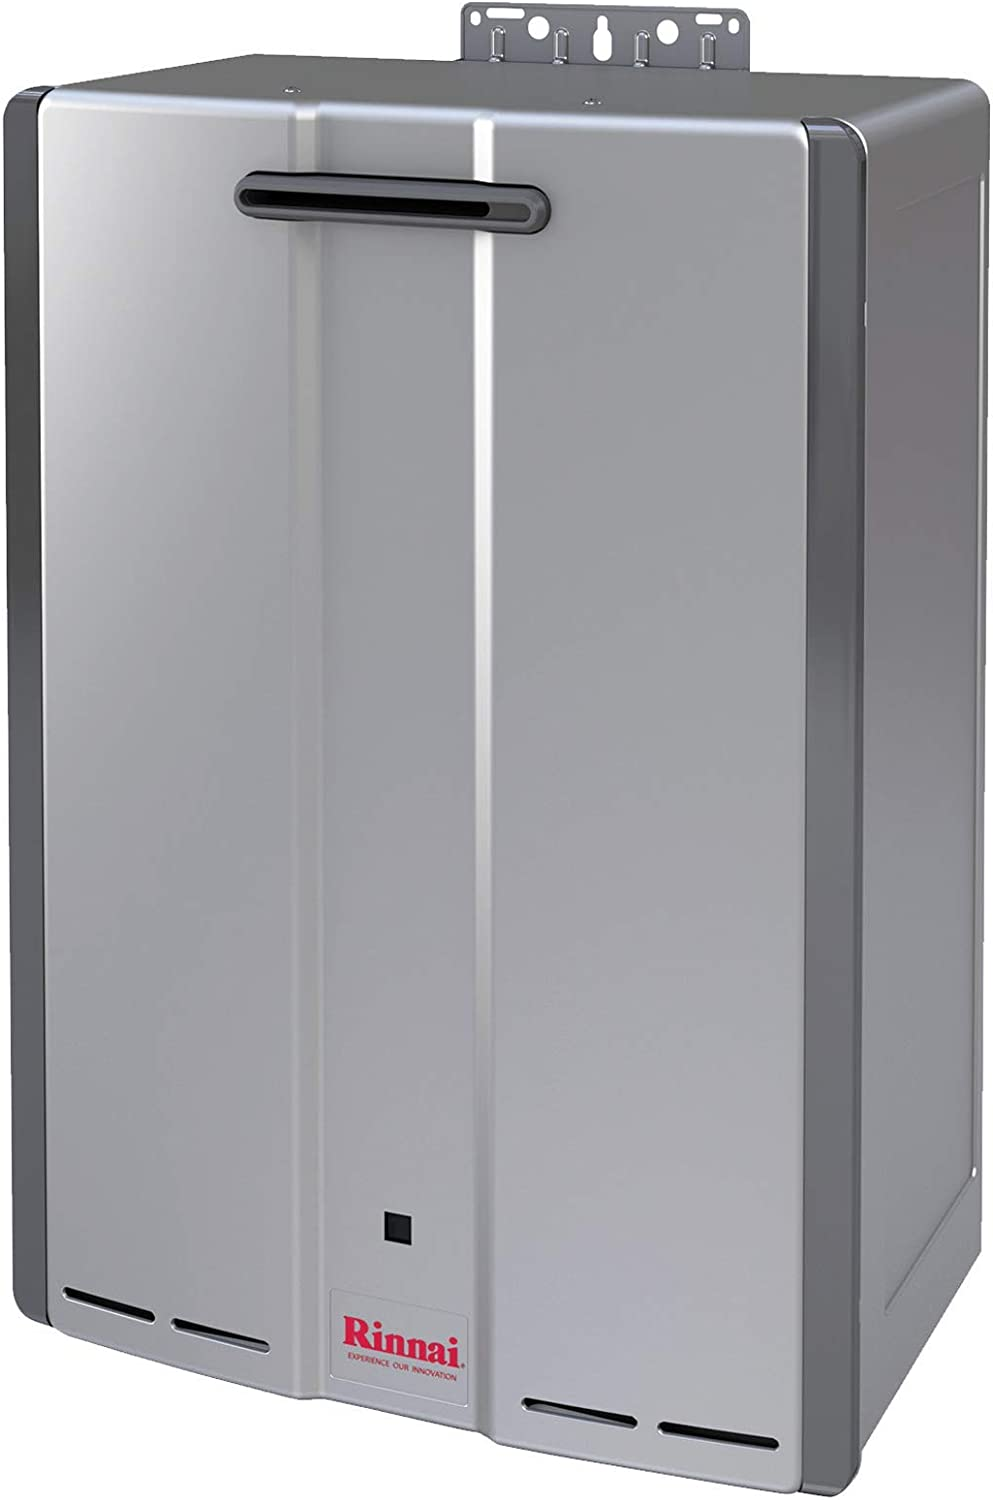 Rinnai RU Series Sensei SE+ Tankless Hot Water Heater: Outdoor Installation